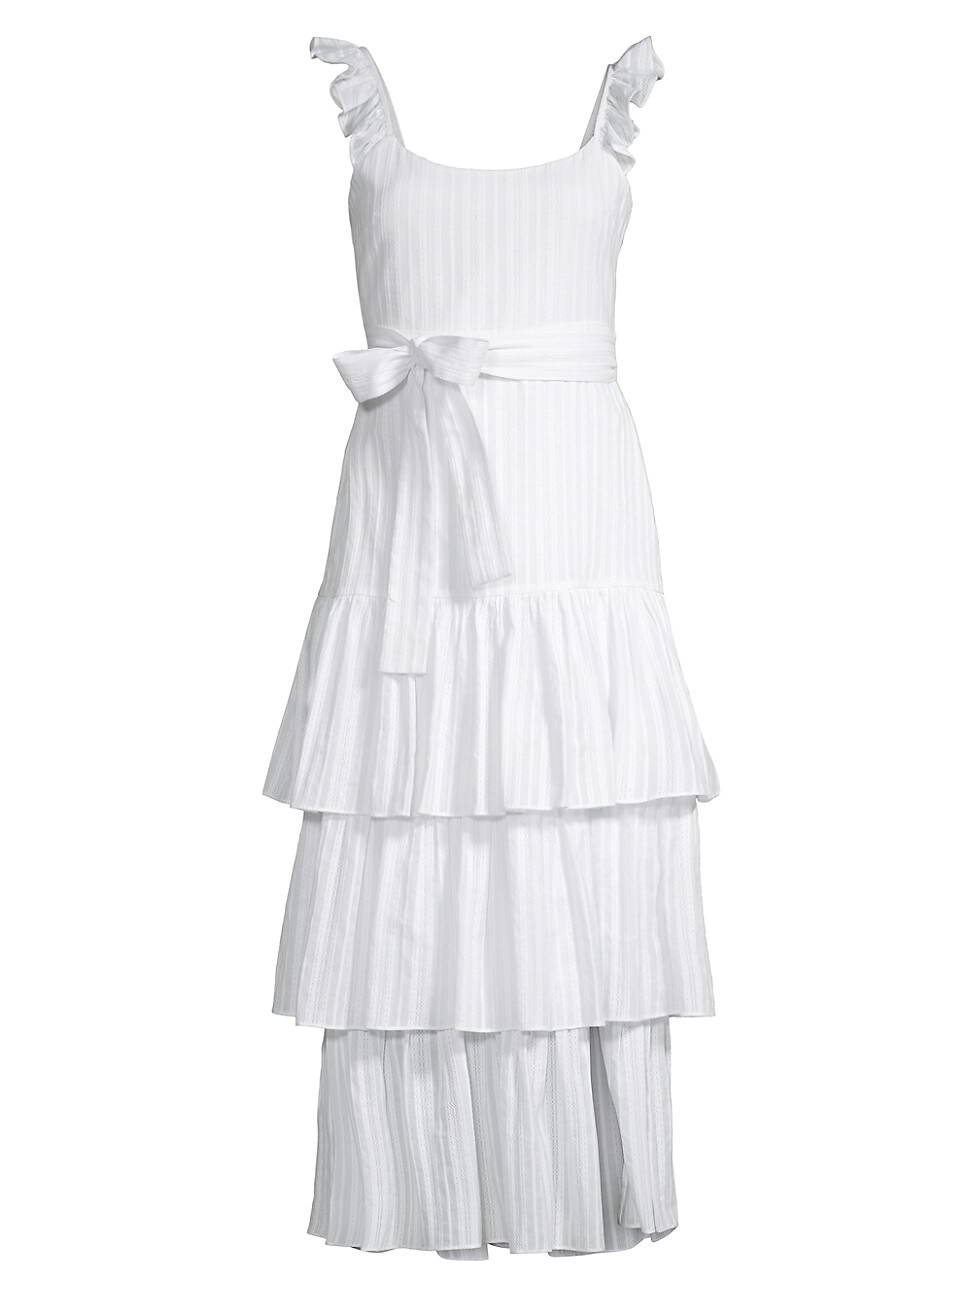 Likely WOMEN'S CHARLOTTE TIERED DRESS